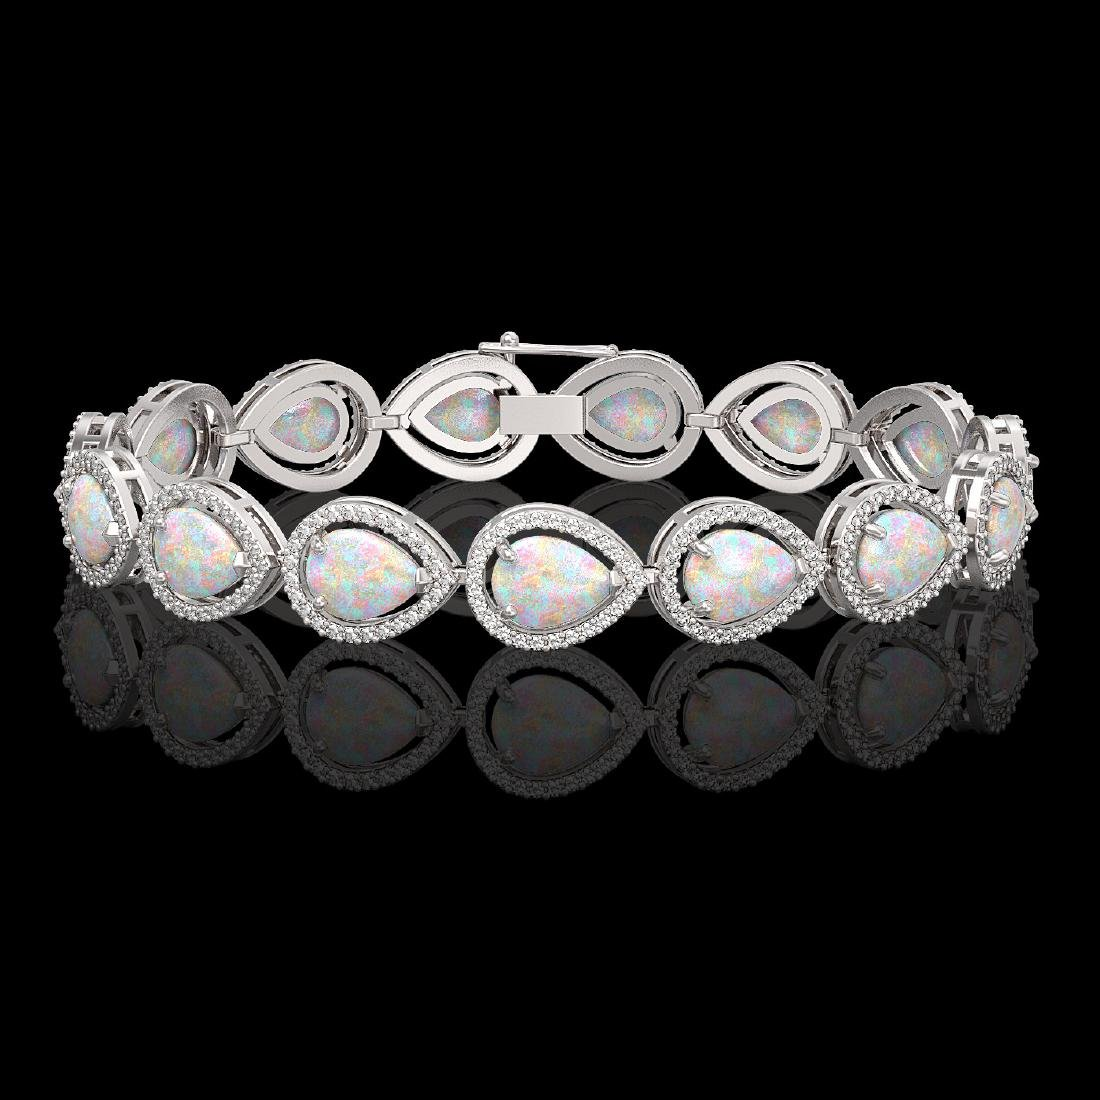 17.15 CTW Opal & Diamond Halo Bracelet 10K White Gold